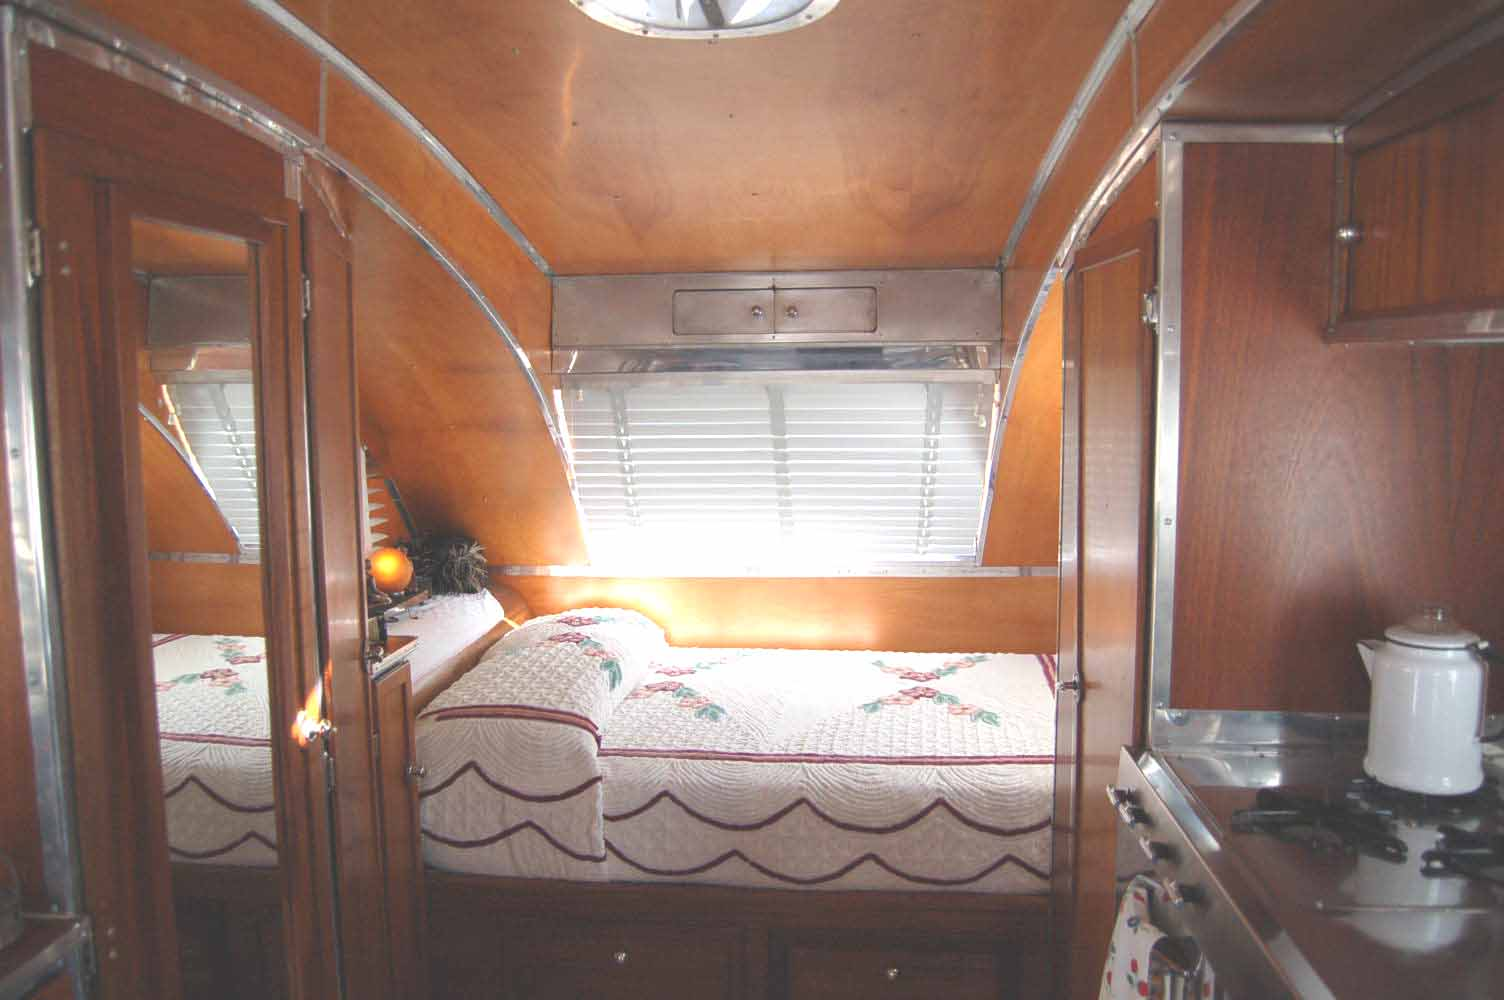 Vintage Trailer Interiors From the 1940s from OldTrailercom